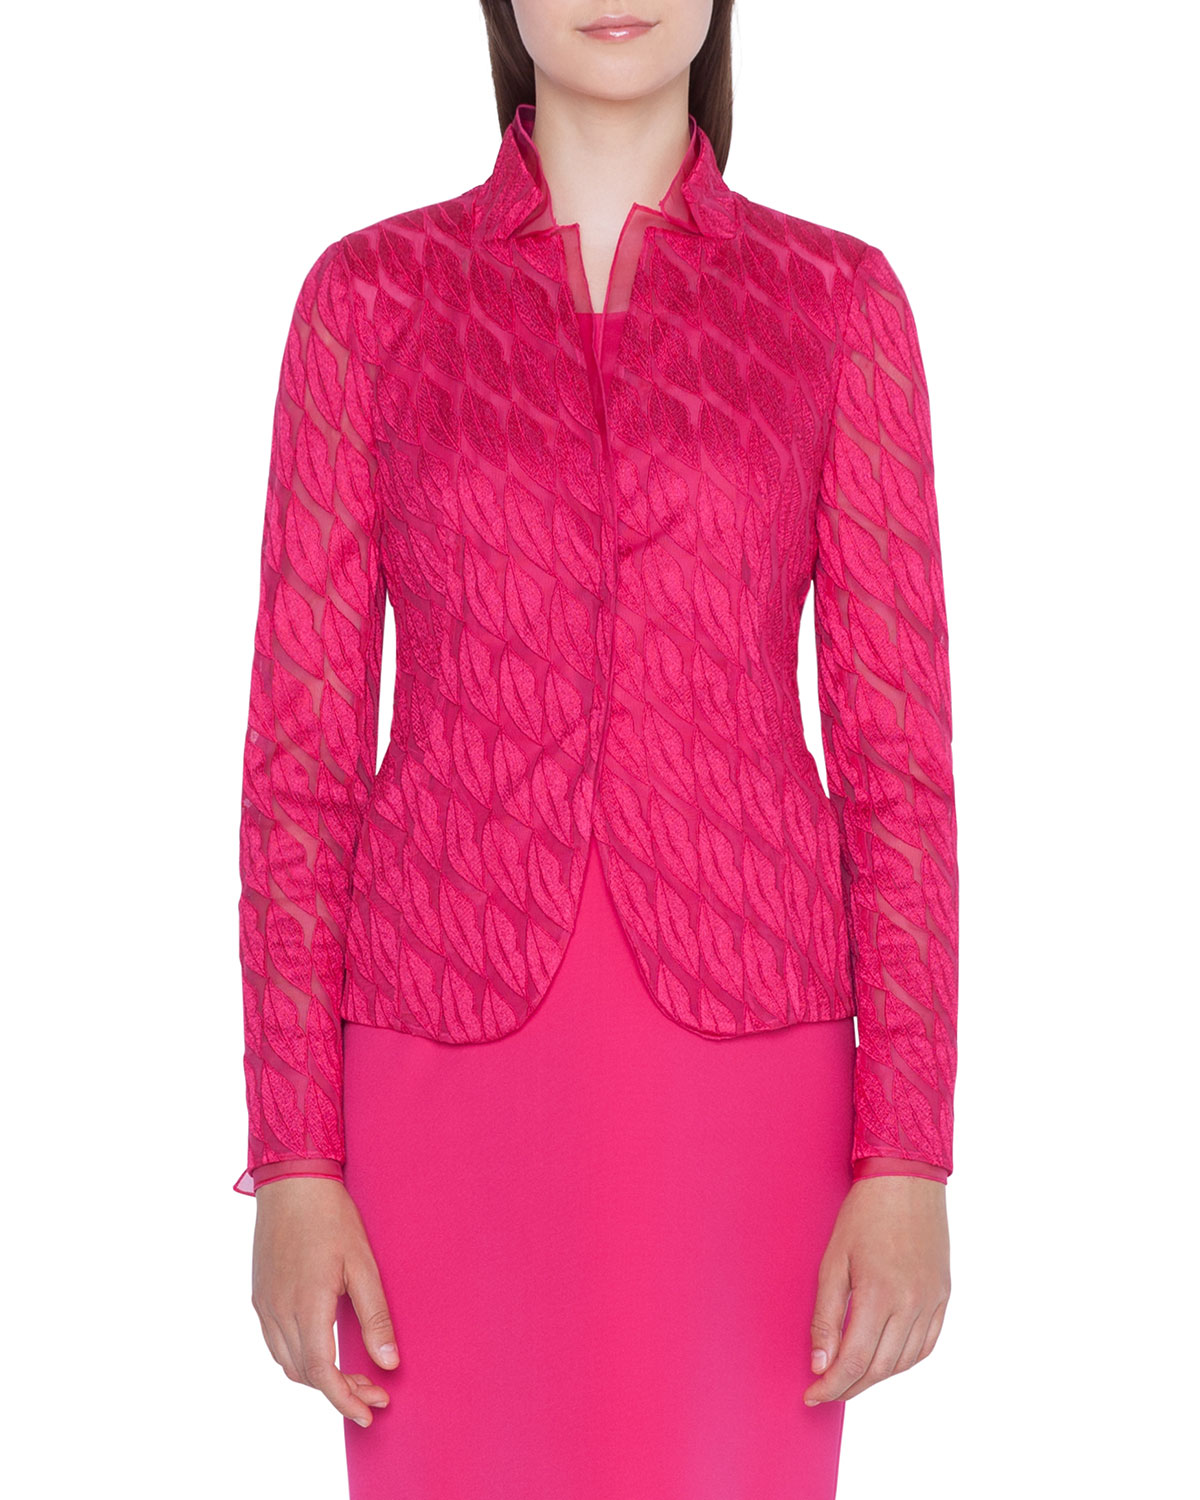 Lips Embroidered Jacket in Pink